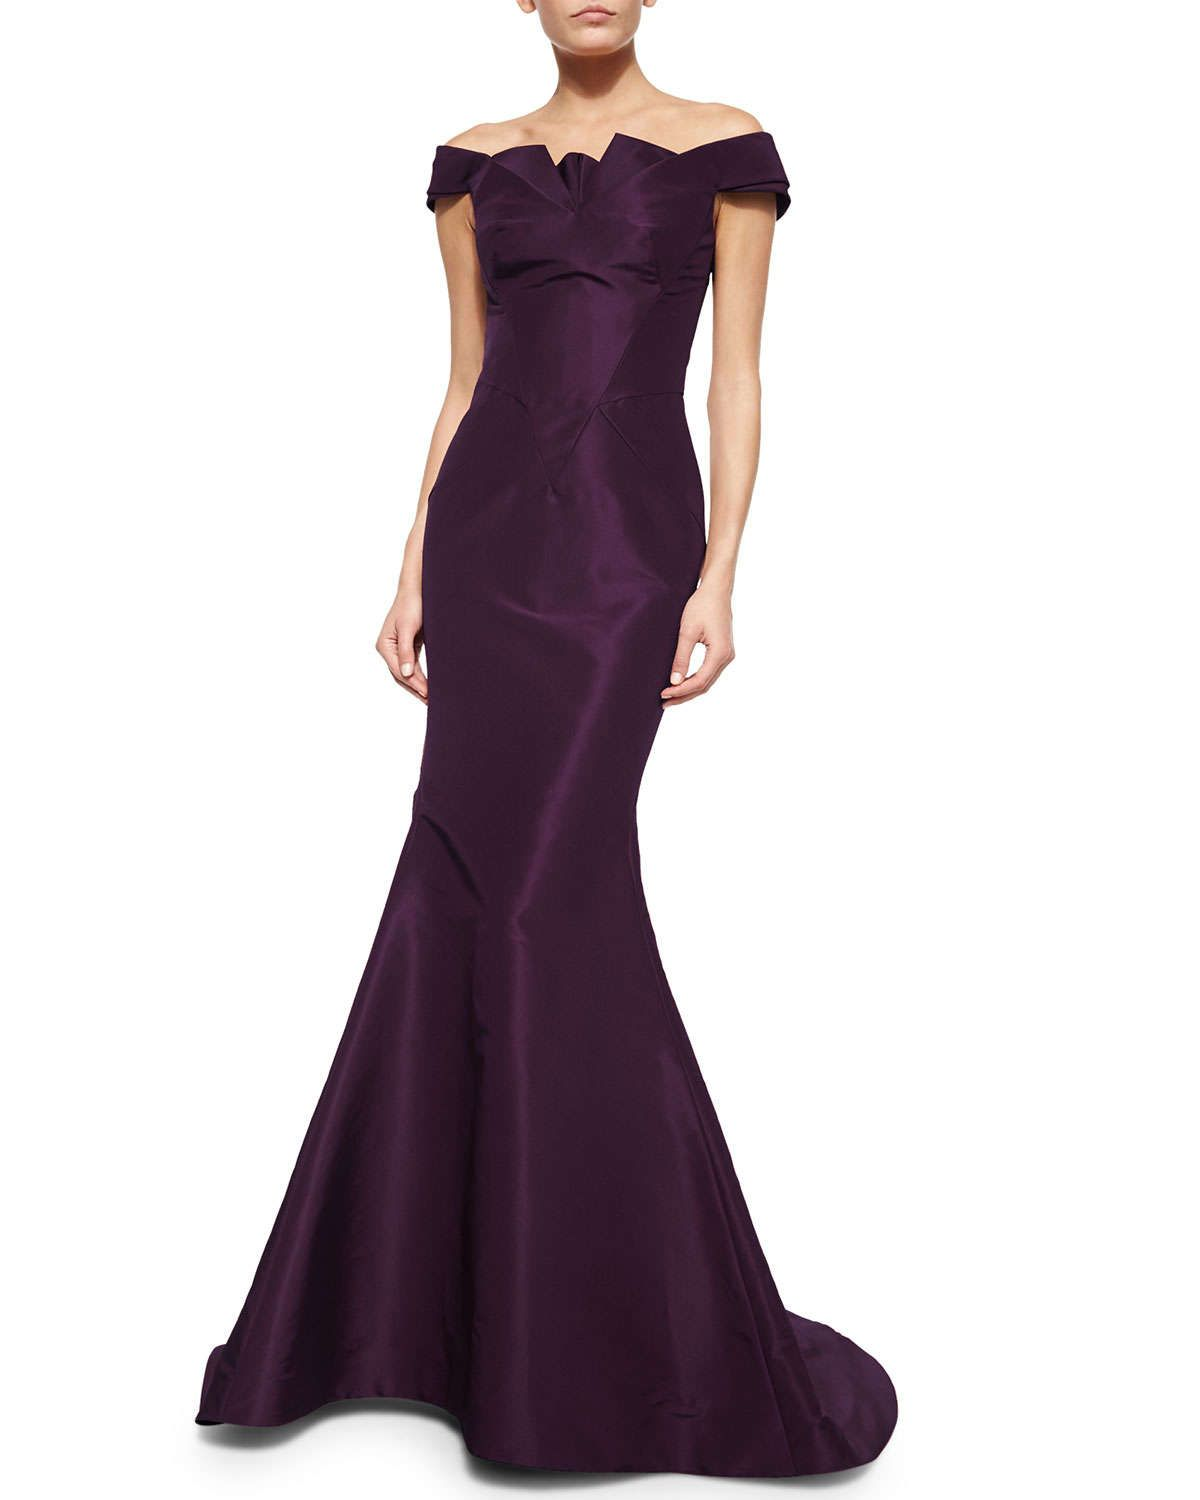 Zac Posen Folded Off-the-Shoulder Silk Faille Gown, Plum | All ...